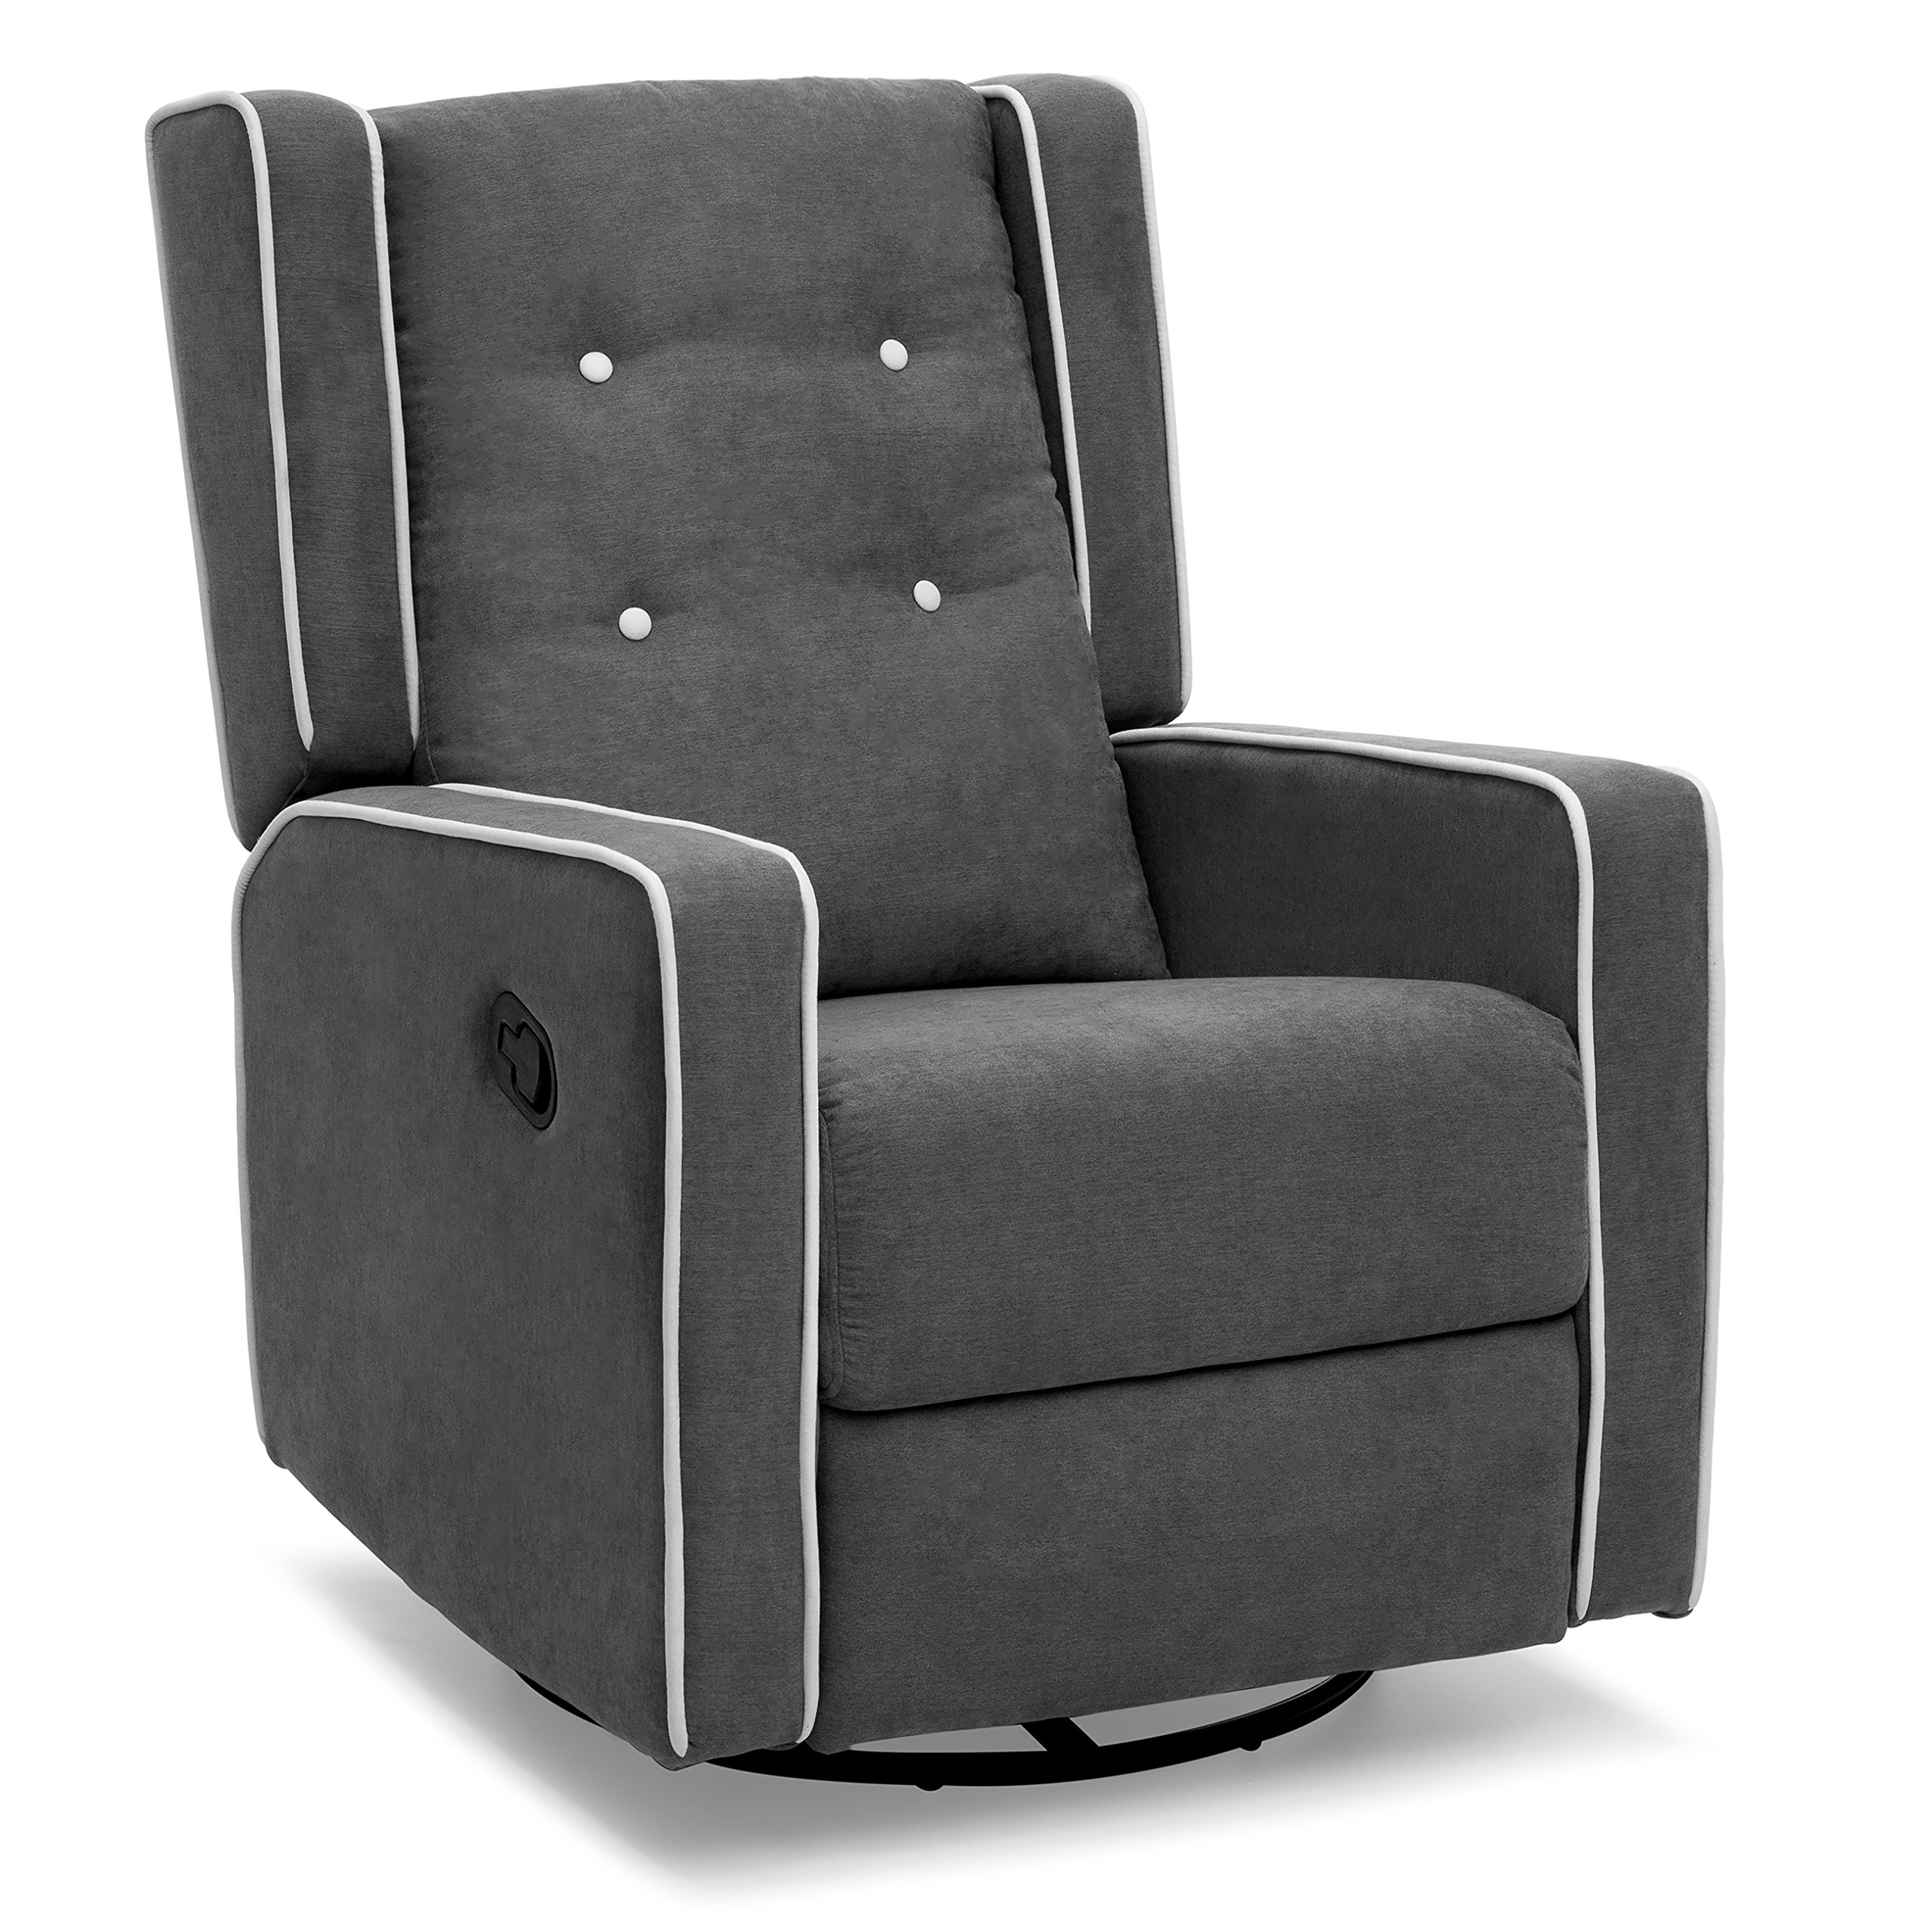 Best Choice Products Microfiber Tufted Upholstered Swivel Gliding Recliner (Gray)